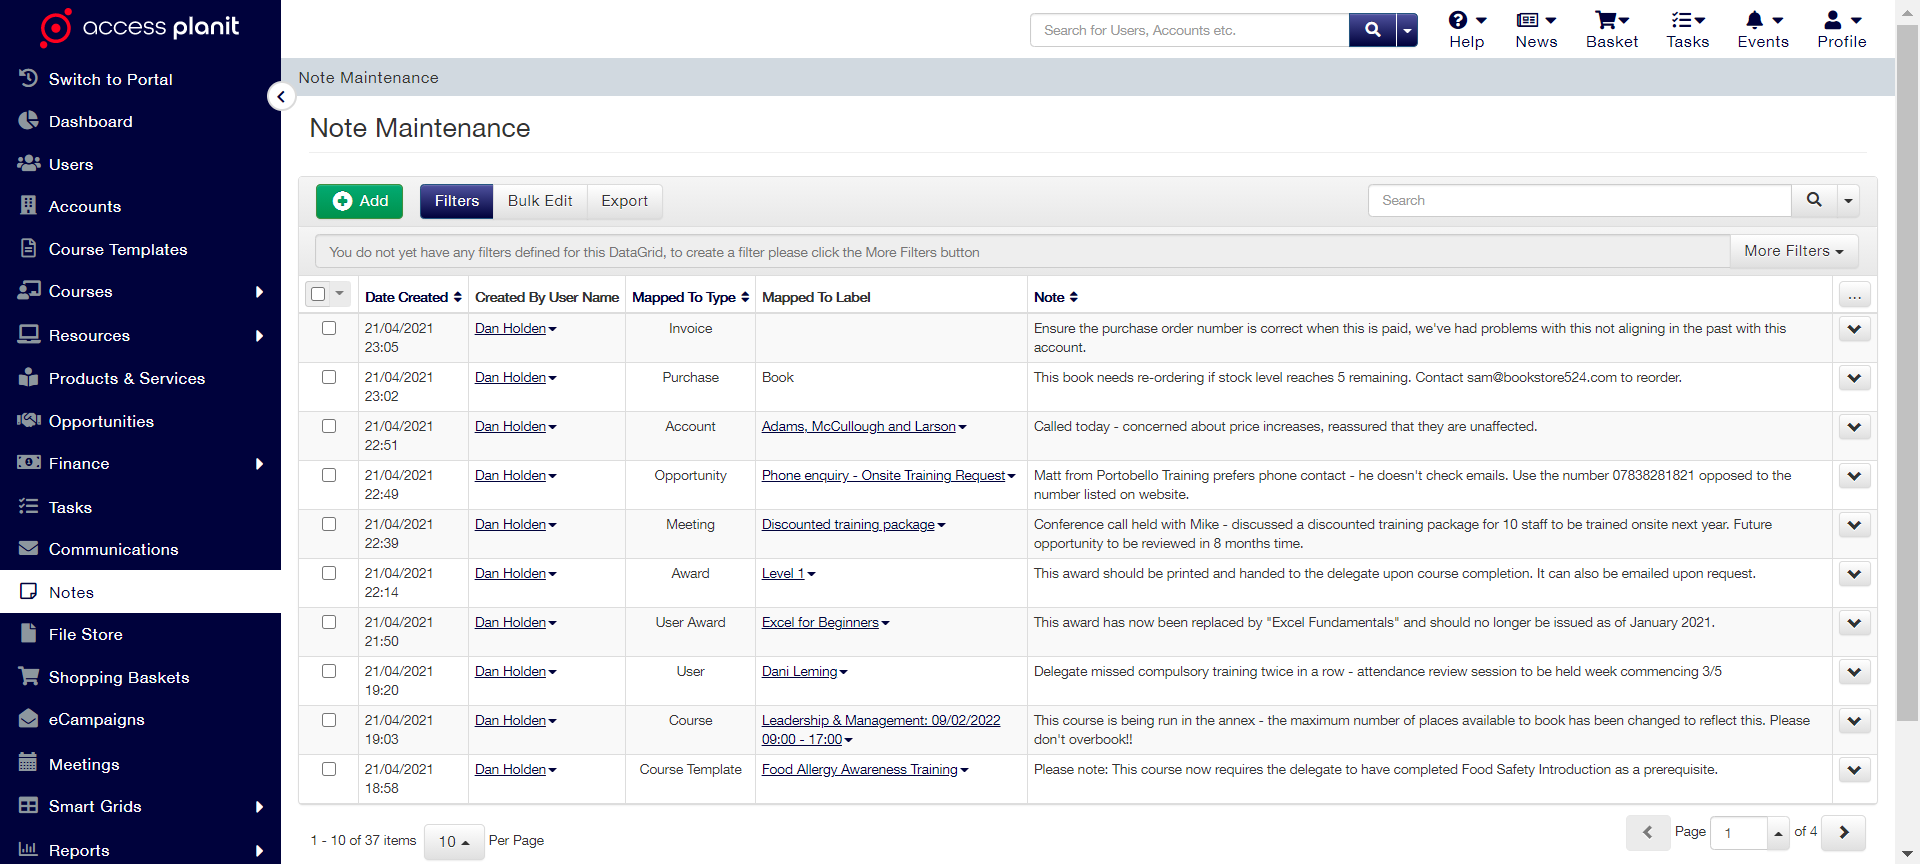 examples of notes being logged within accessplanits training management platform